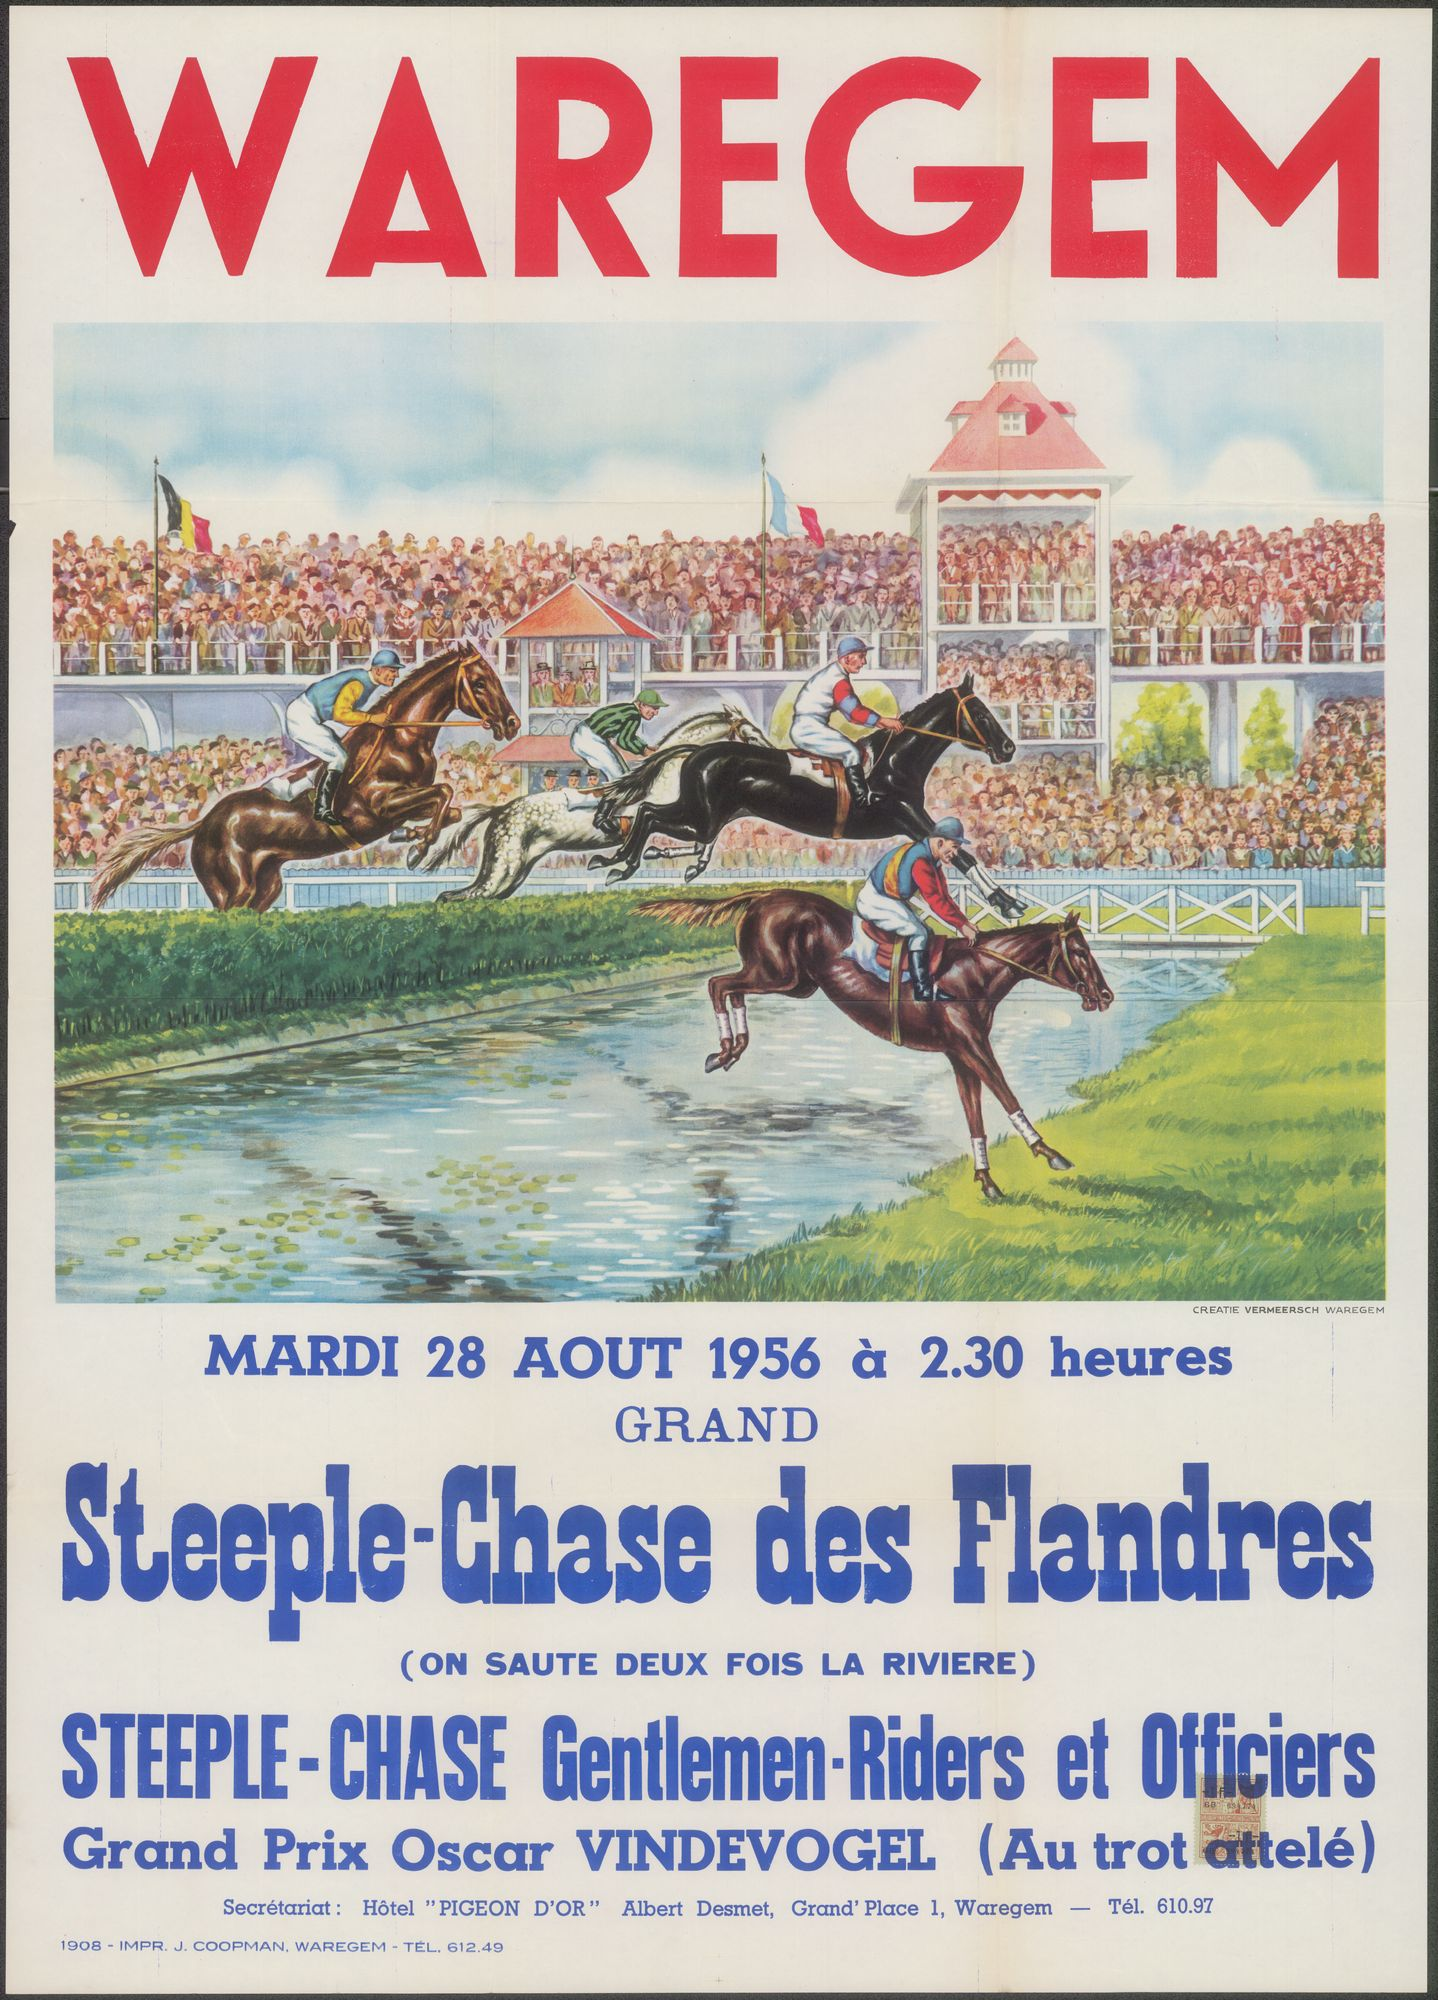 Waregem, Grand Steeple-Chase des Flandres, Steeple-Chase Gentlemen-Riders et Officiers, Grand Prix Oscar Vindevogel, mardi 28 aout 1956